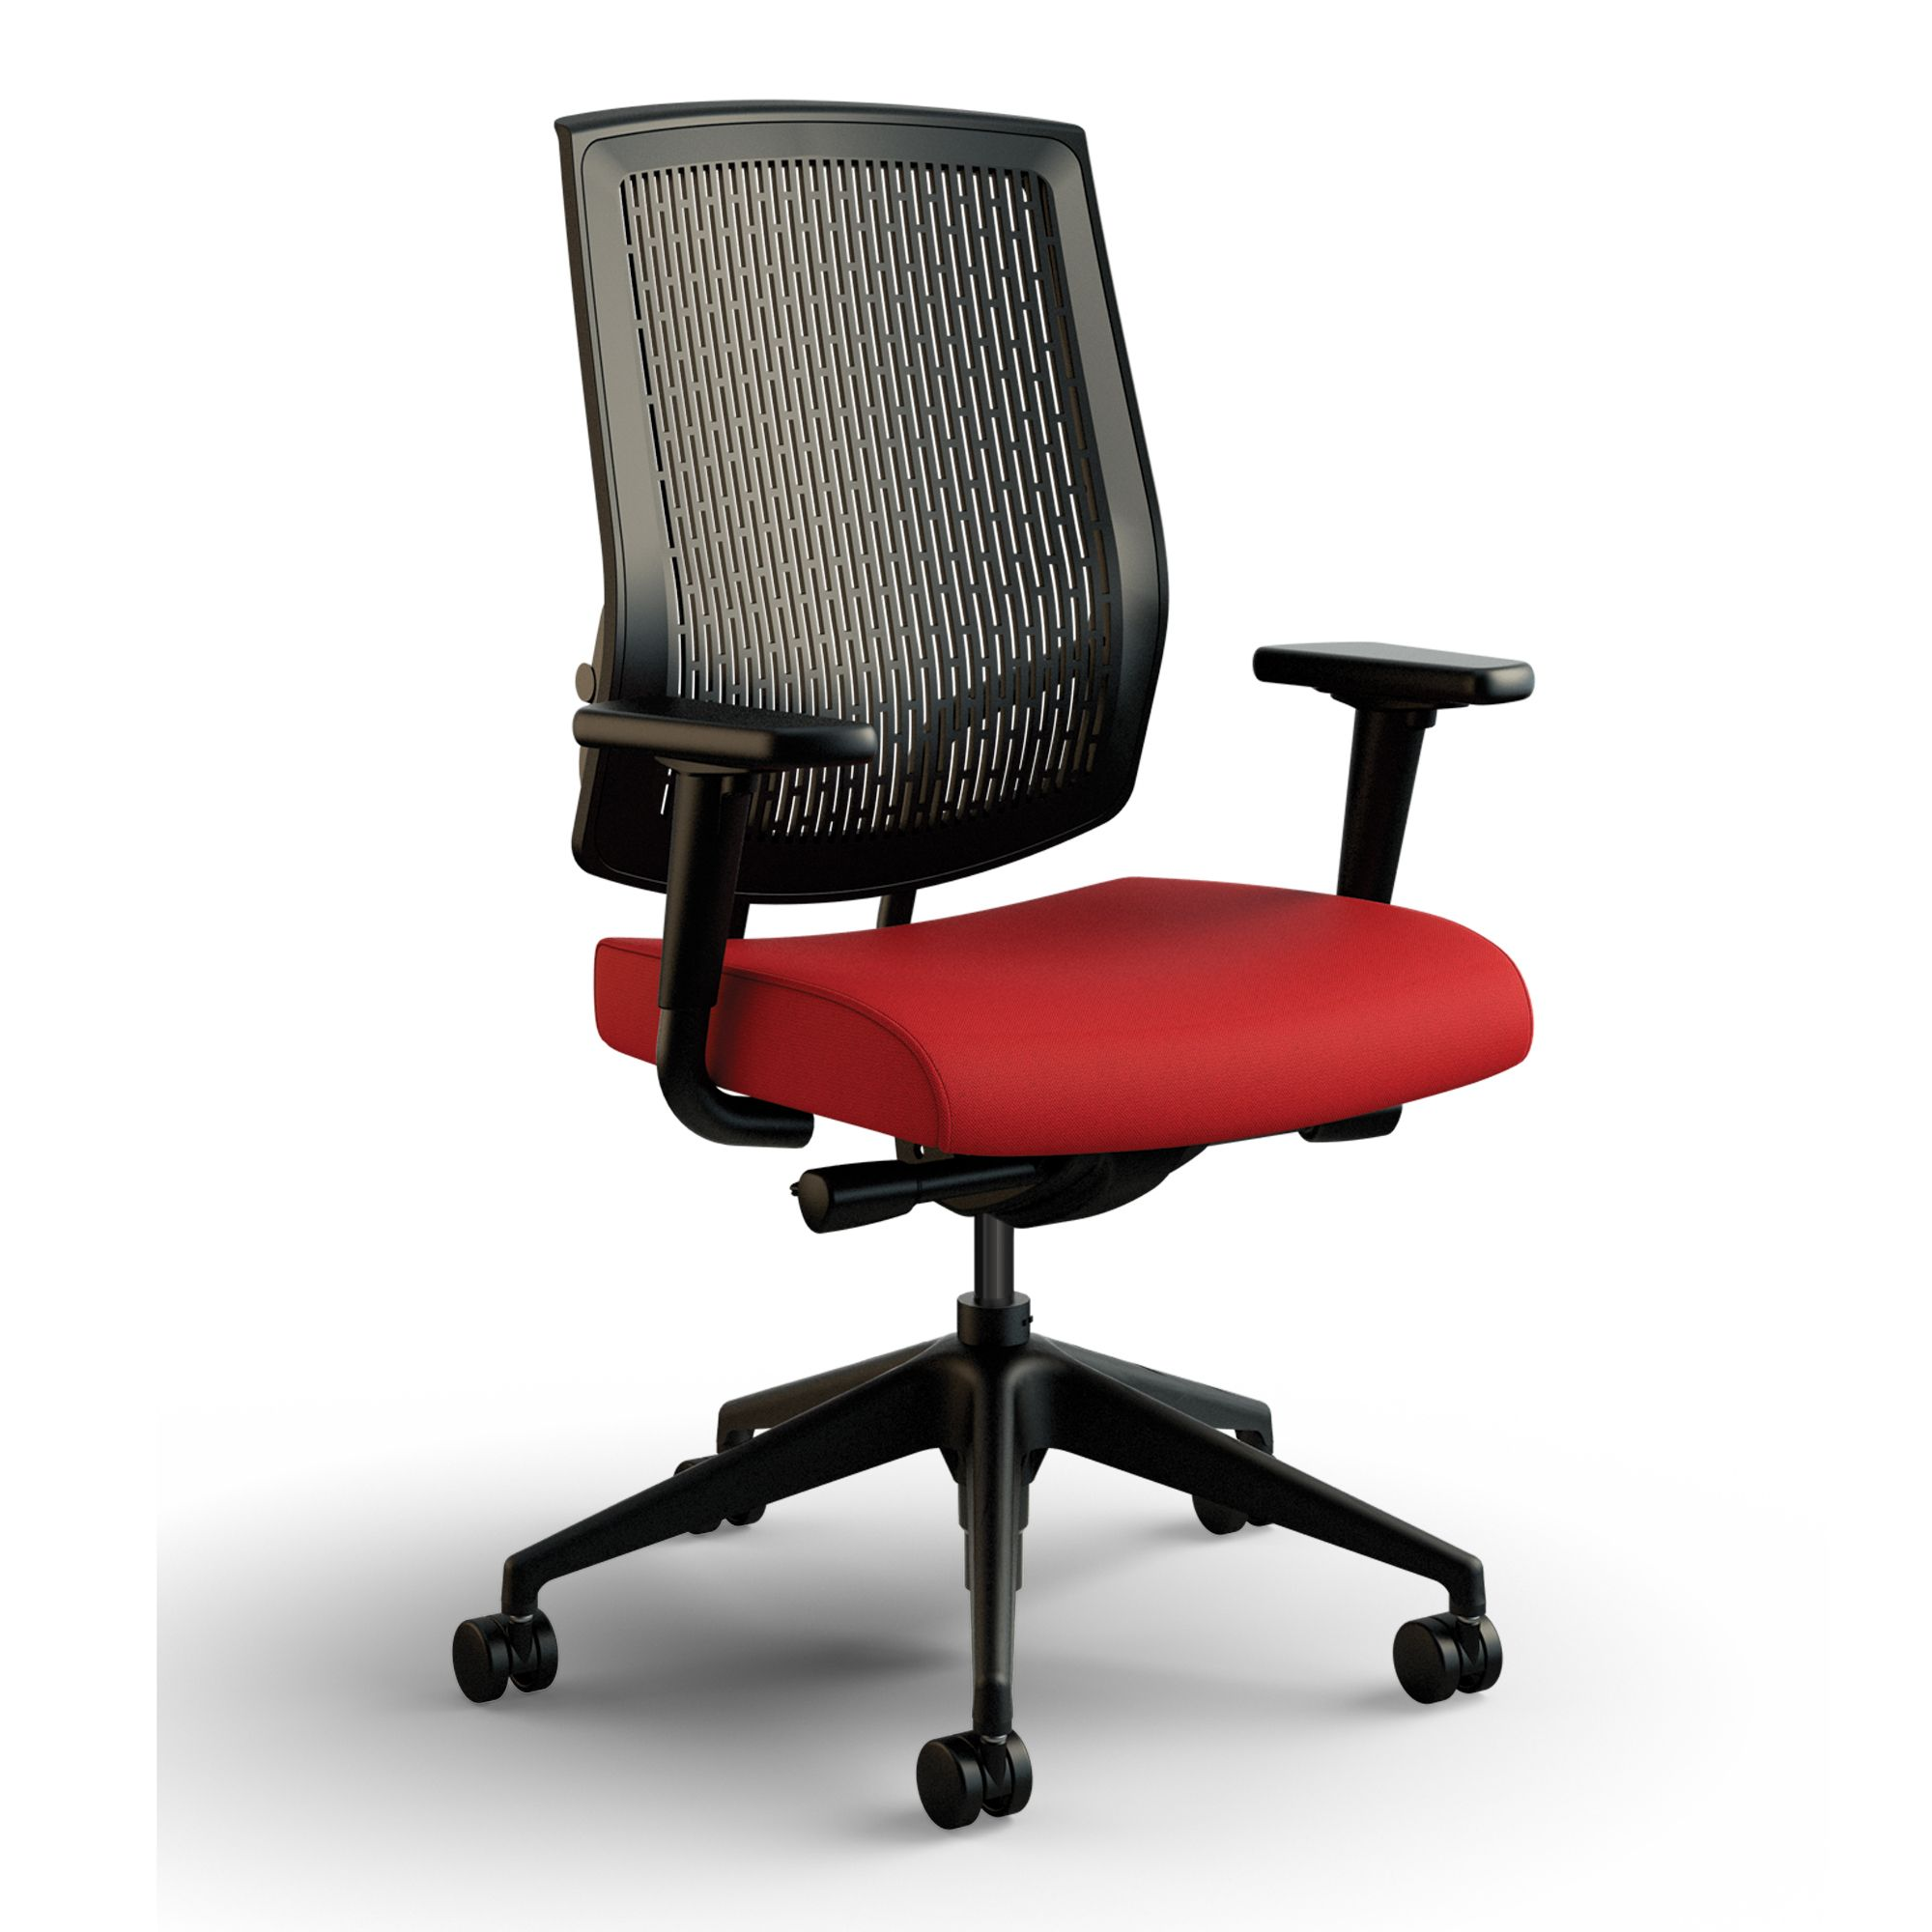 Sit It Amplify The perfect mainstream task chair Take A Seat